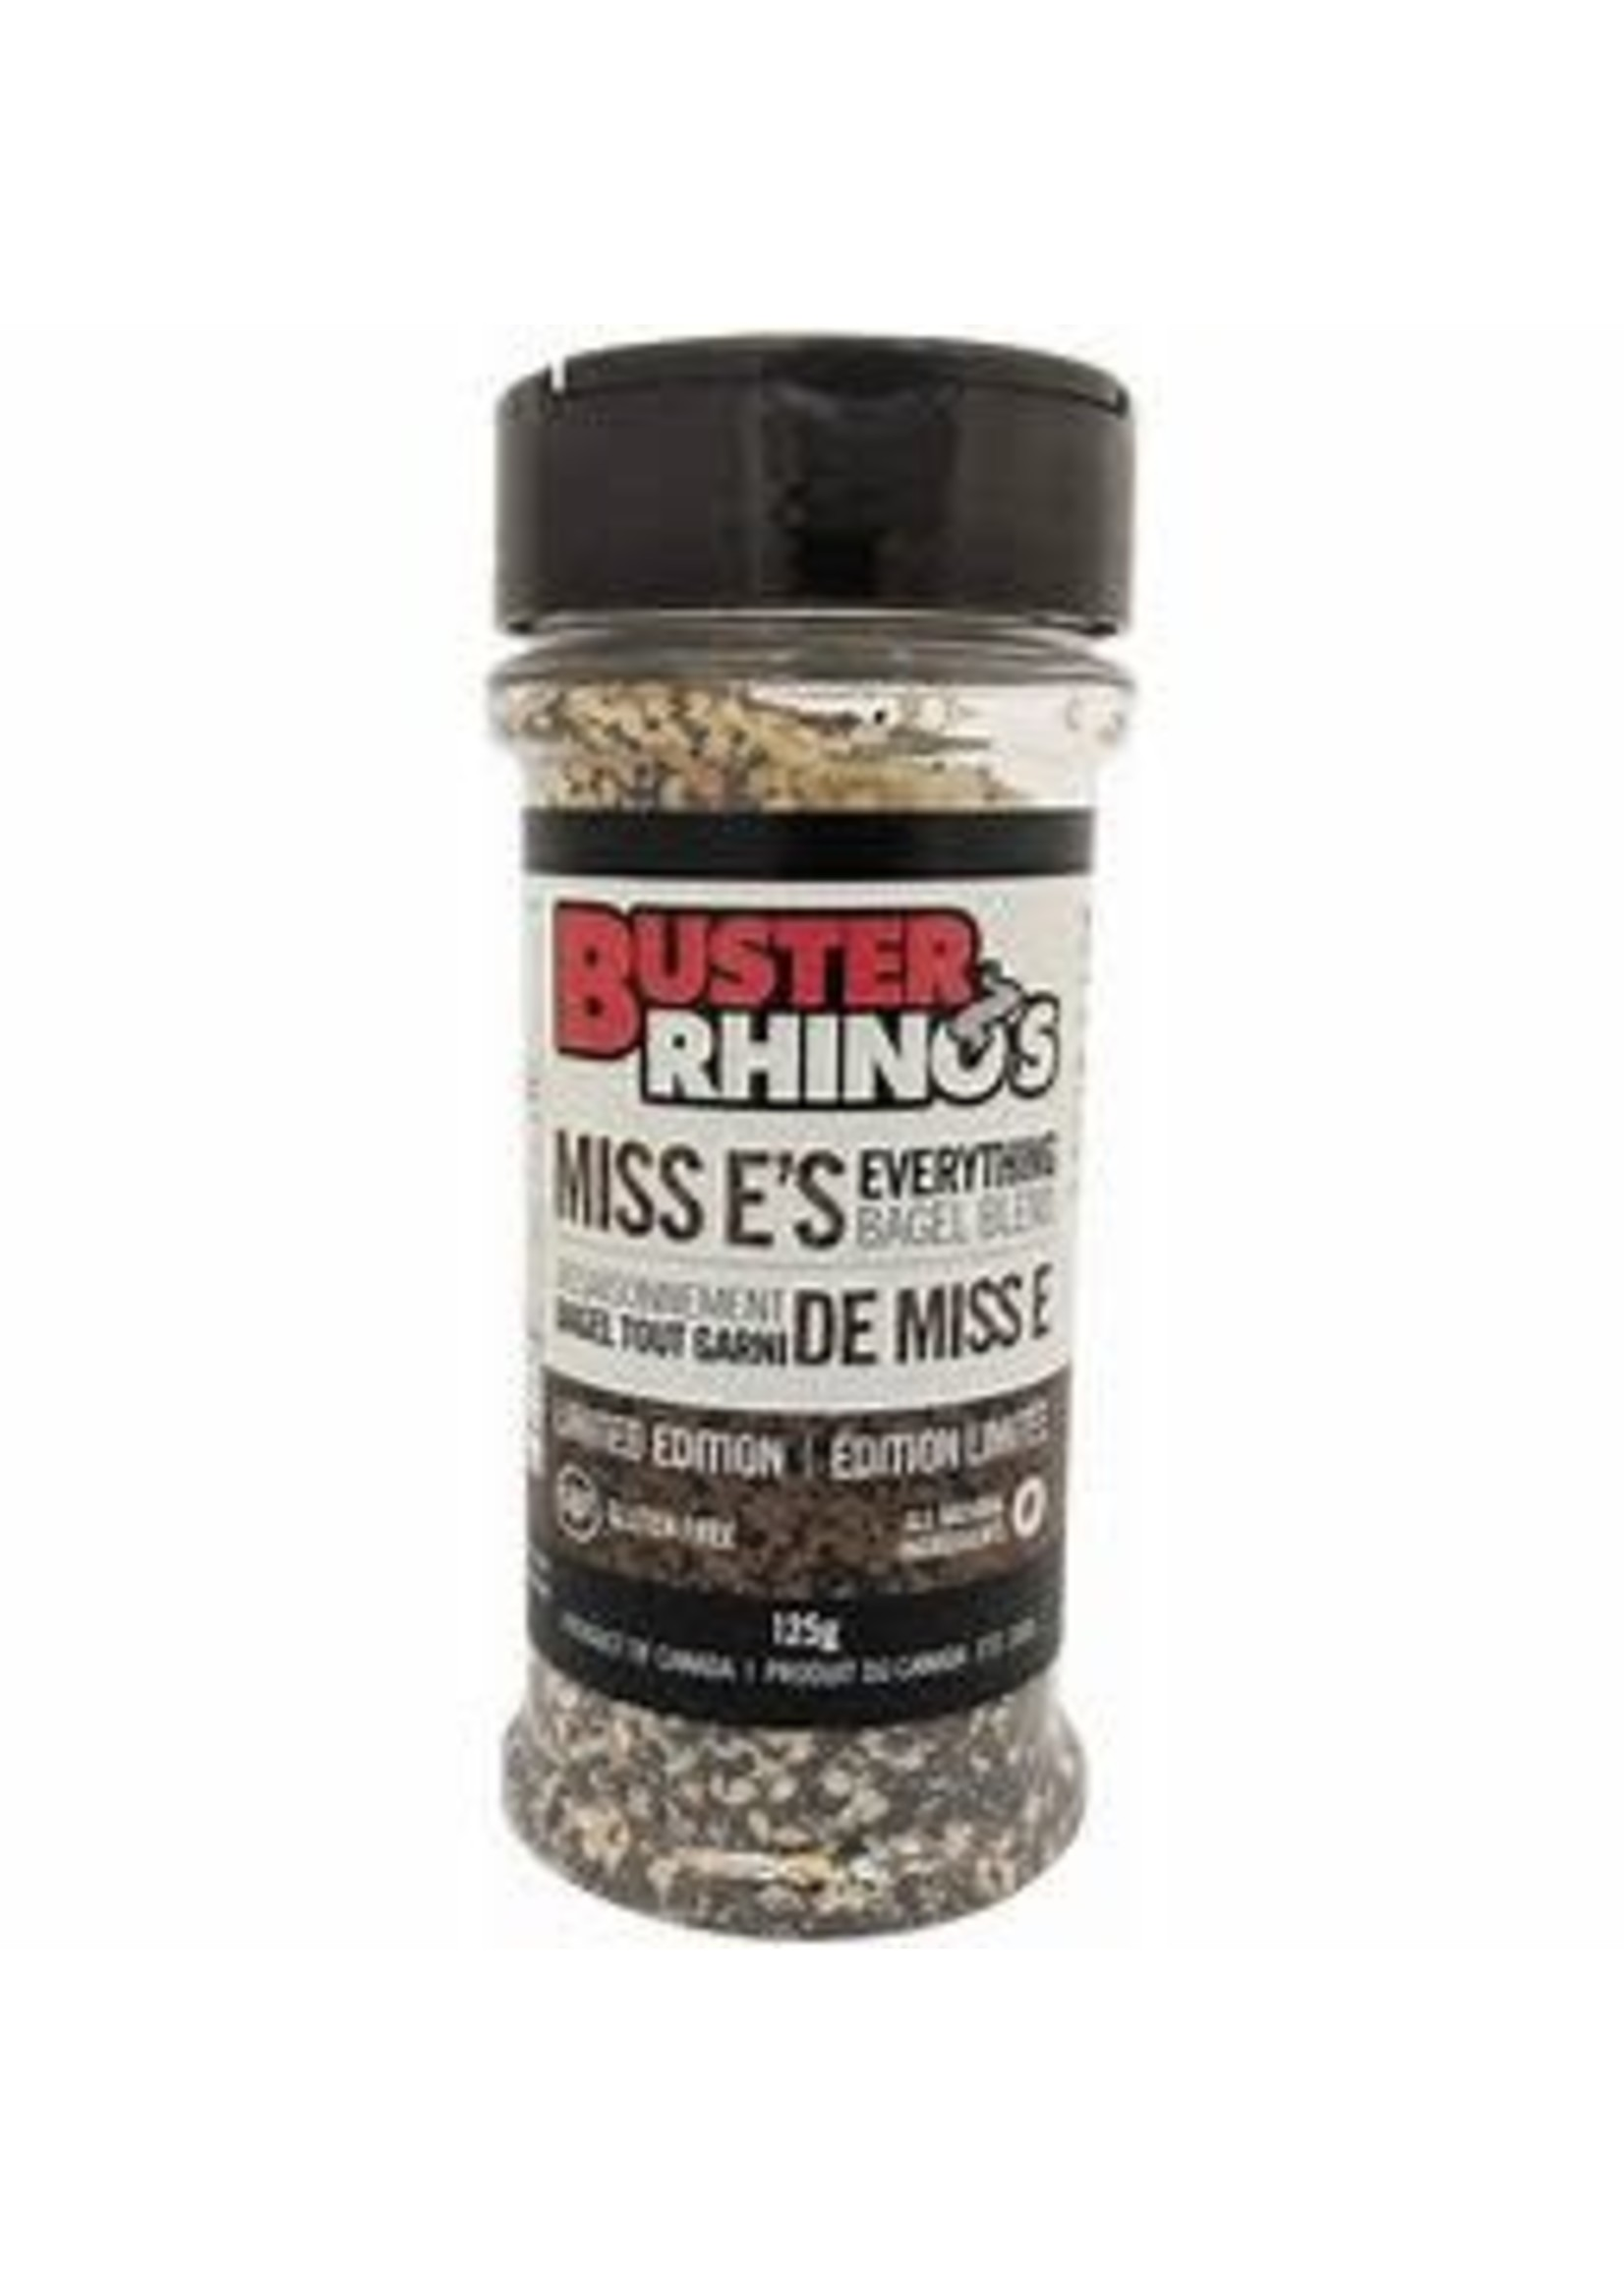 Buster Rhinos Buster Misse's Everything Bagel Spice